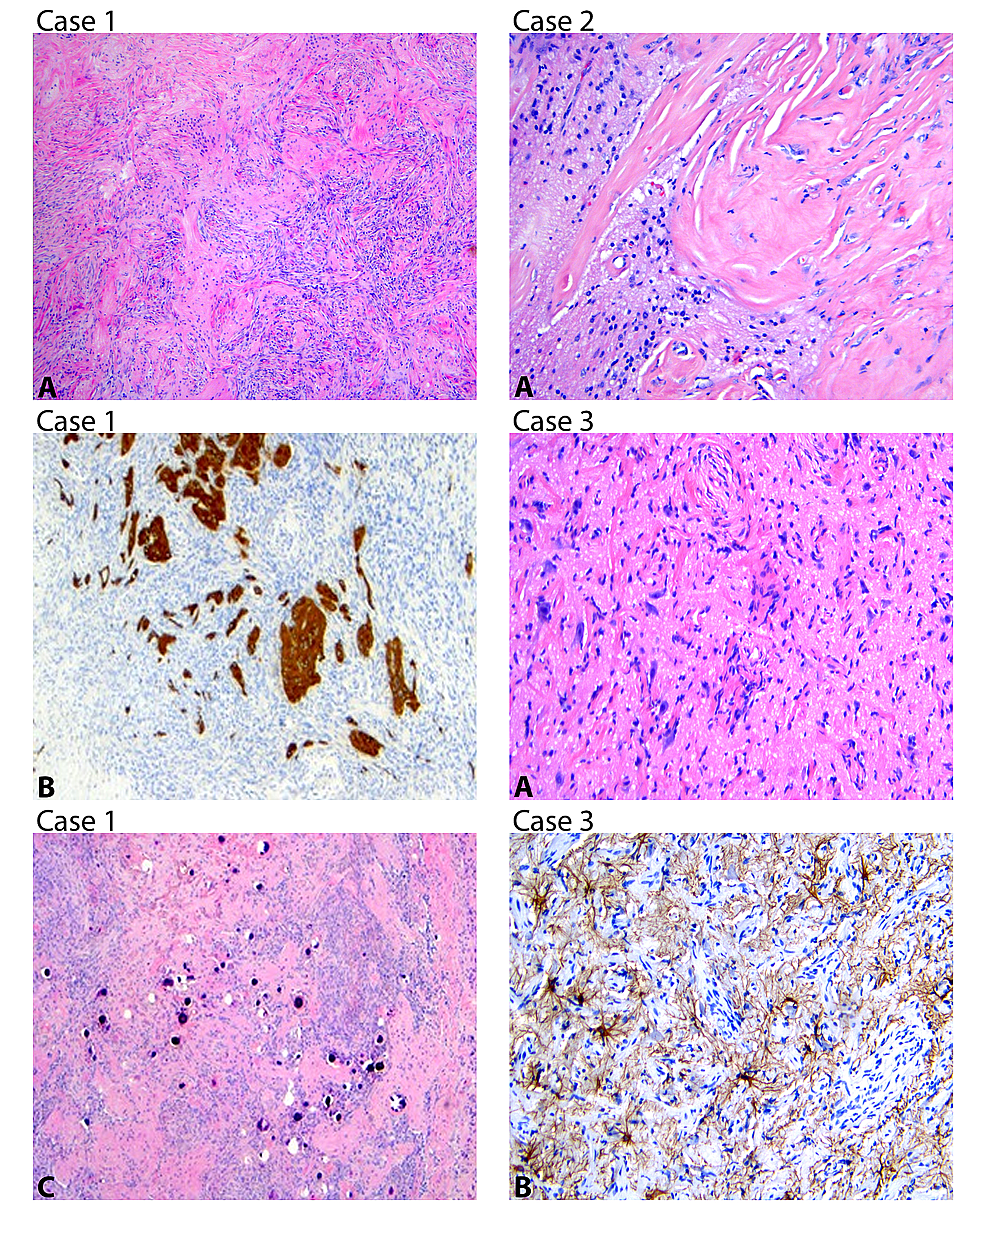 Case-1:-(A)-Meningothelial-proliferation-infiltrating-into-brain-parenchyma-H&E-(4X).-(B)-GFAP-highlighting-entrapped-gliotic-brain-parenchyma-(H&E-10-X).-(C)-Numerous-psammomatous-calcifications-H&E-(4X).-Case-2:-(A)-Irregular-interface-between-dense-fibrous-tissue-and-brain-parenchyma-H&E-(10X).-Case-3:-(A)-Small-caliber-vessels-and-meningothelial-perivascular-meningothelial-fibroblast-like-proliferation-illustrating-invasion-into-brain-parenchyma-with-entrapped-and-slightly-enlarged-neurons-H&E-(10X).-(B)-GFAP-immunoreactivity-in-astrocytes-(10X).